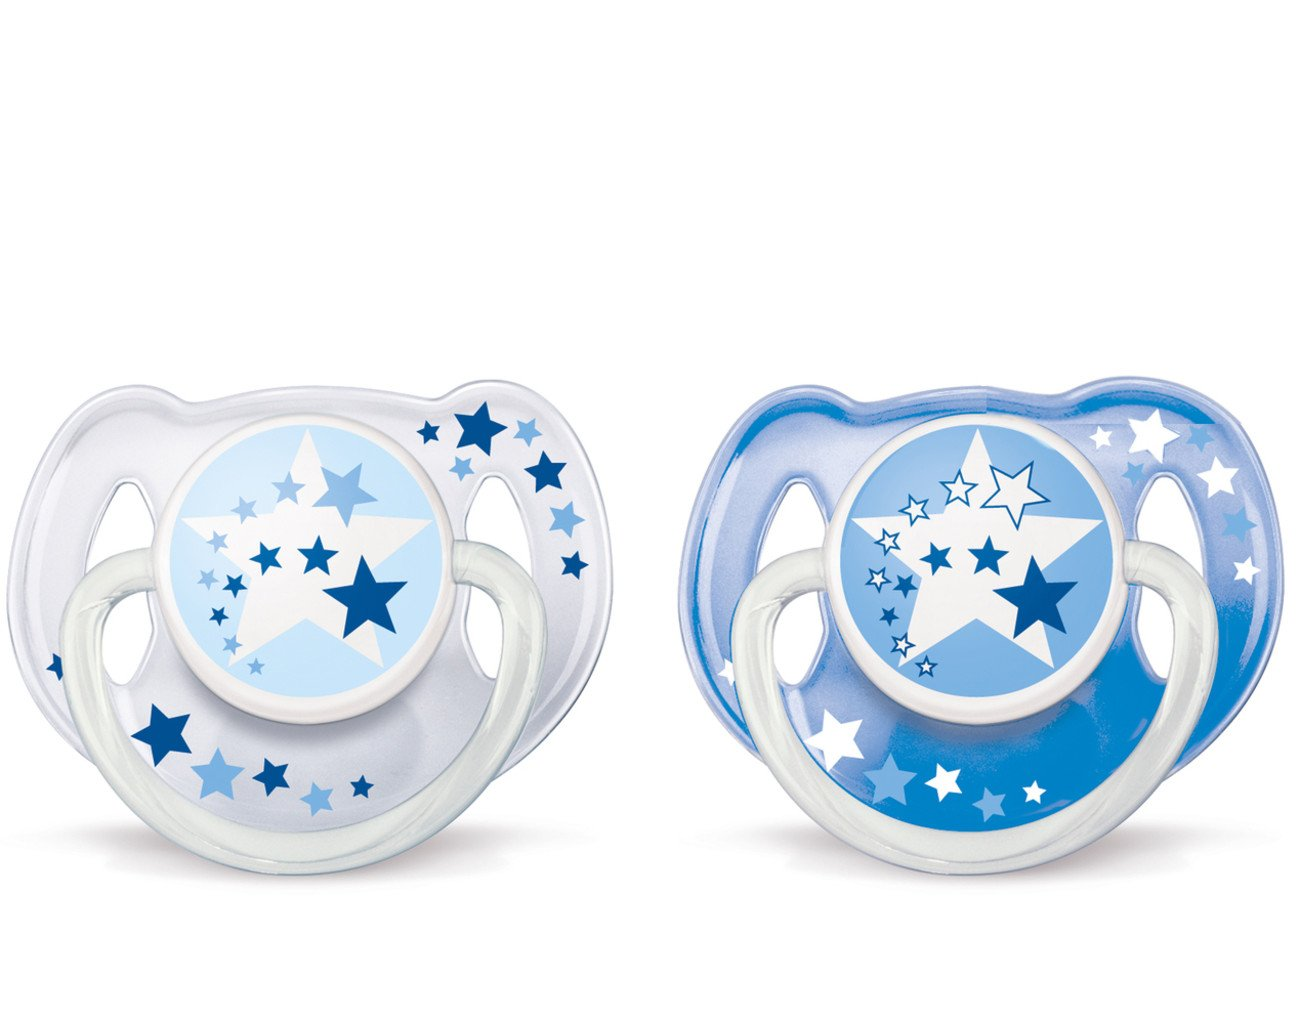 Philips Avent Glow in the Dark Orthodontic Pacifier 6-18 Months, Blue, SCF176/22